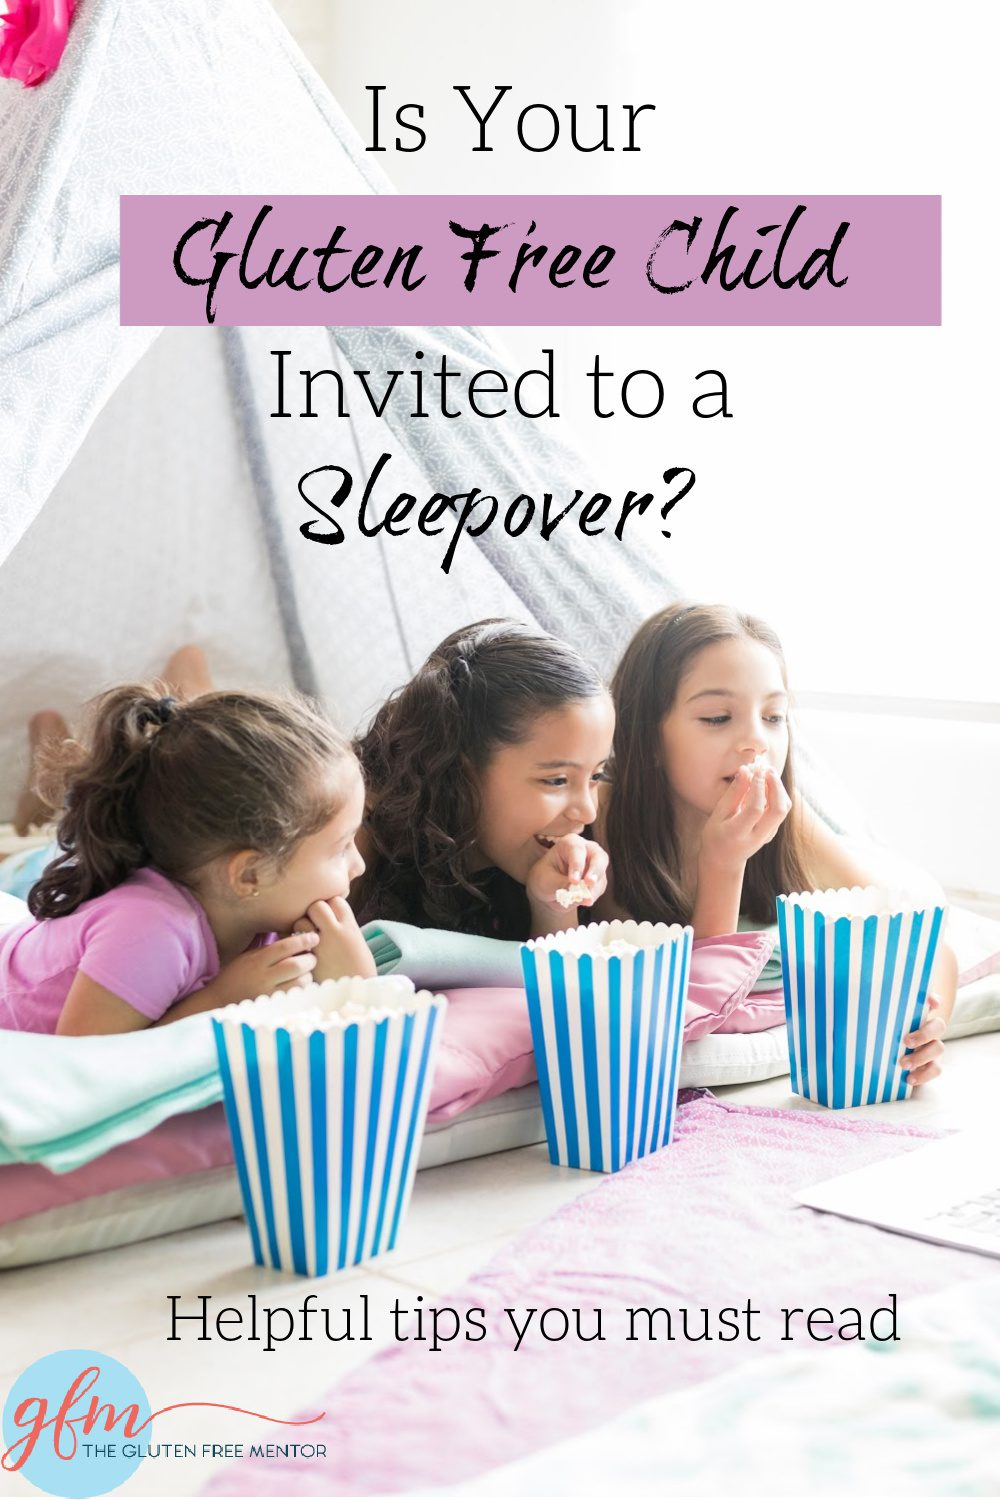 Pin When Your Gluten Free Child is Invited to a Sleepover to your Pinterest Account